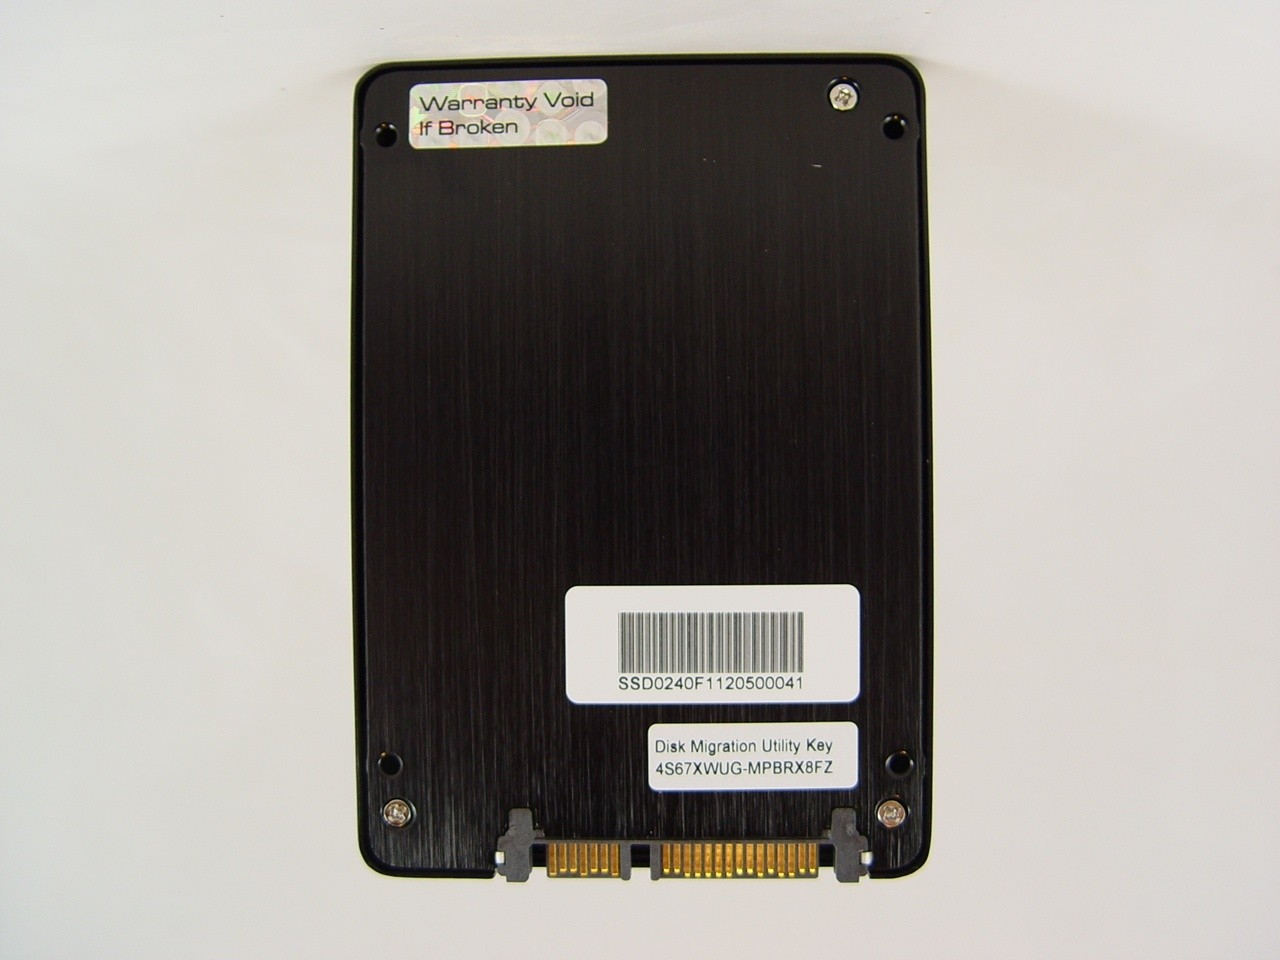 zalman_f1_240gb_ssd_review